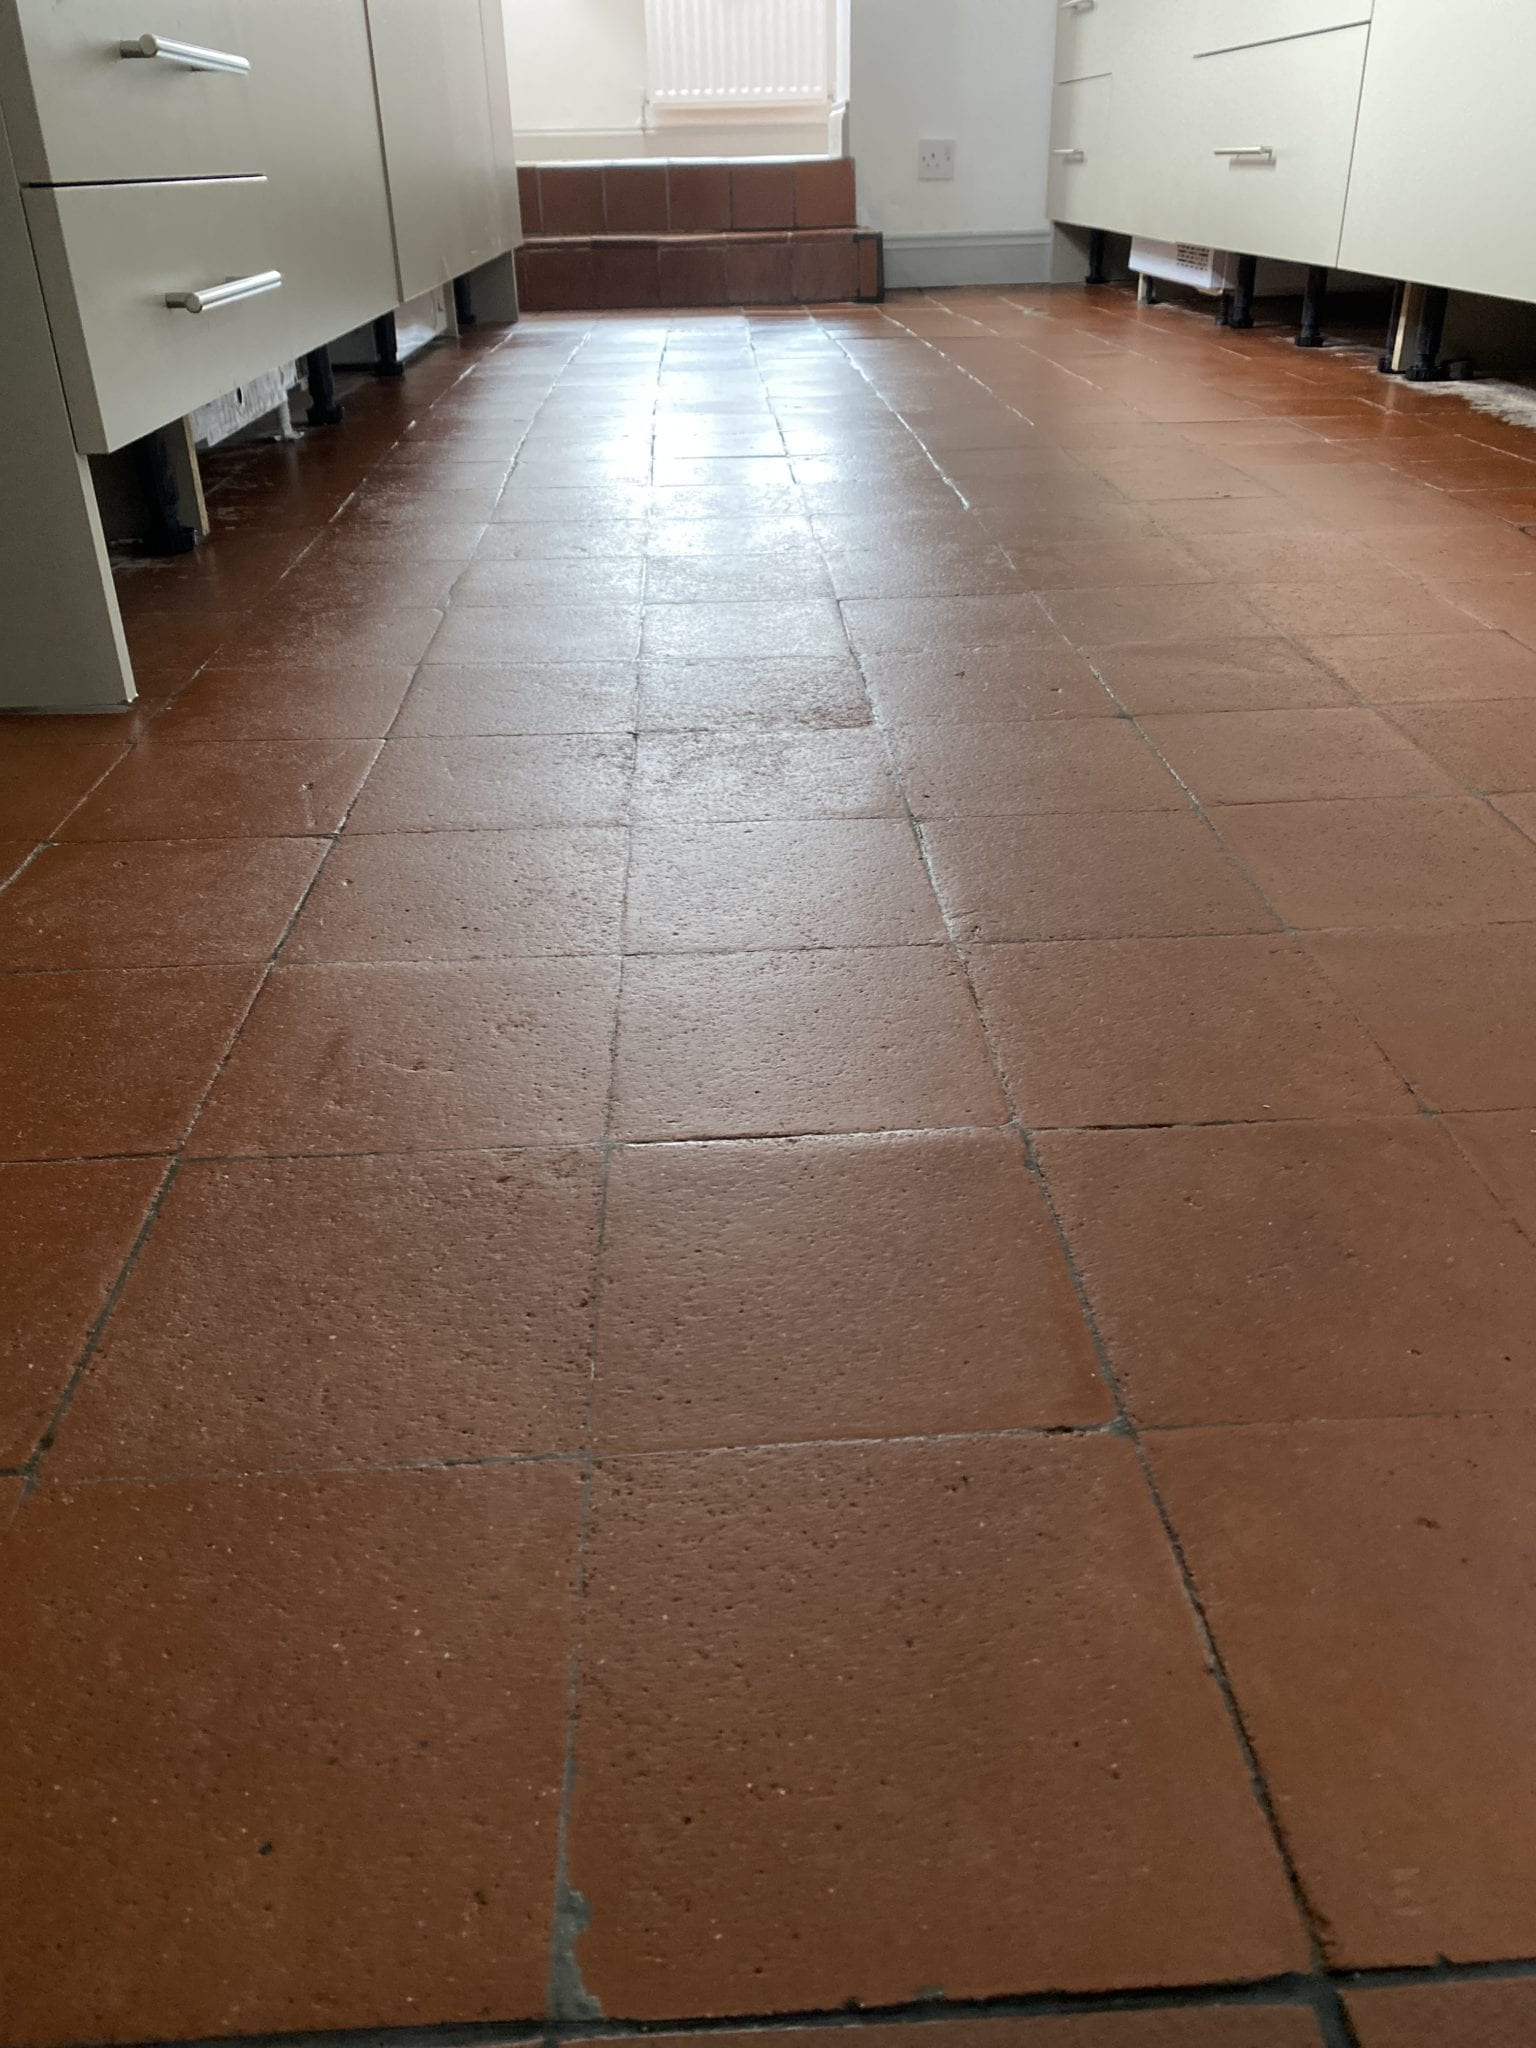 White paint removed from quarry tiles